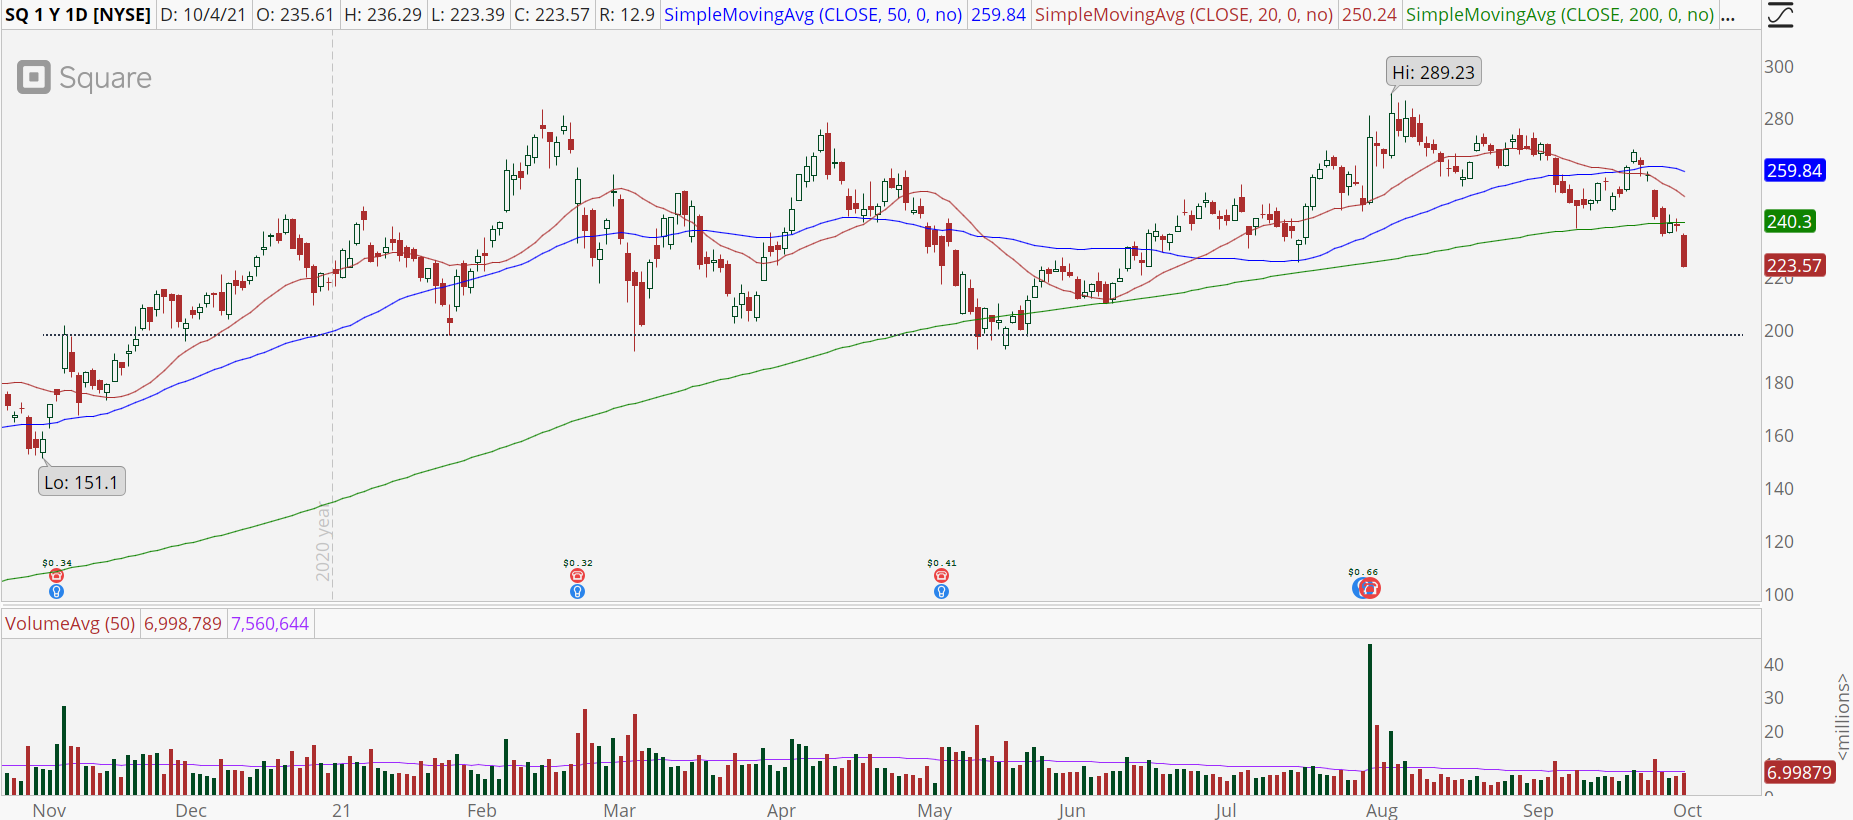 Square (SQ) stock chart with major support break